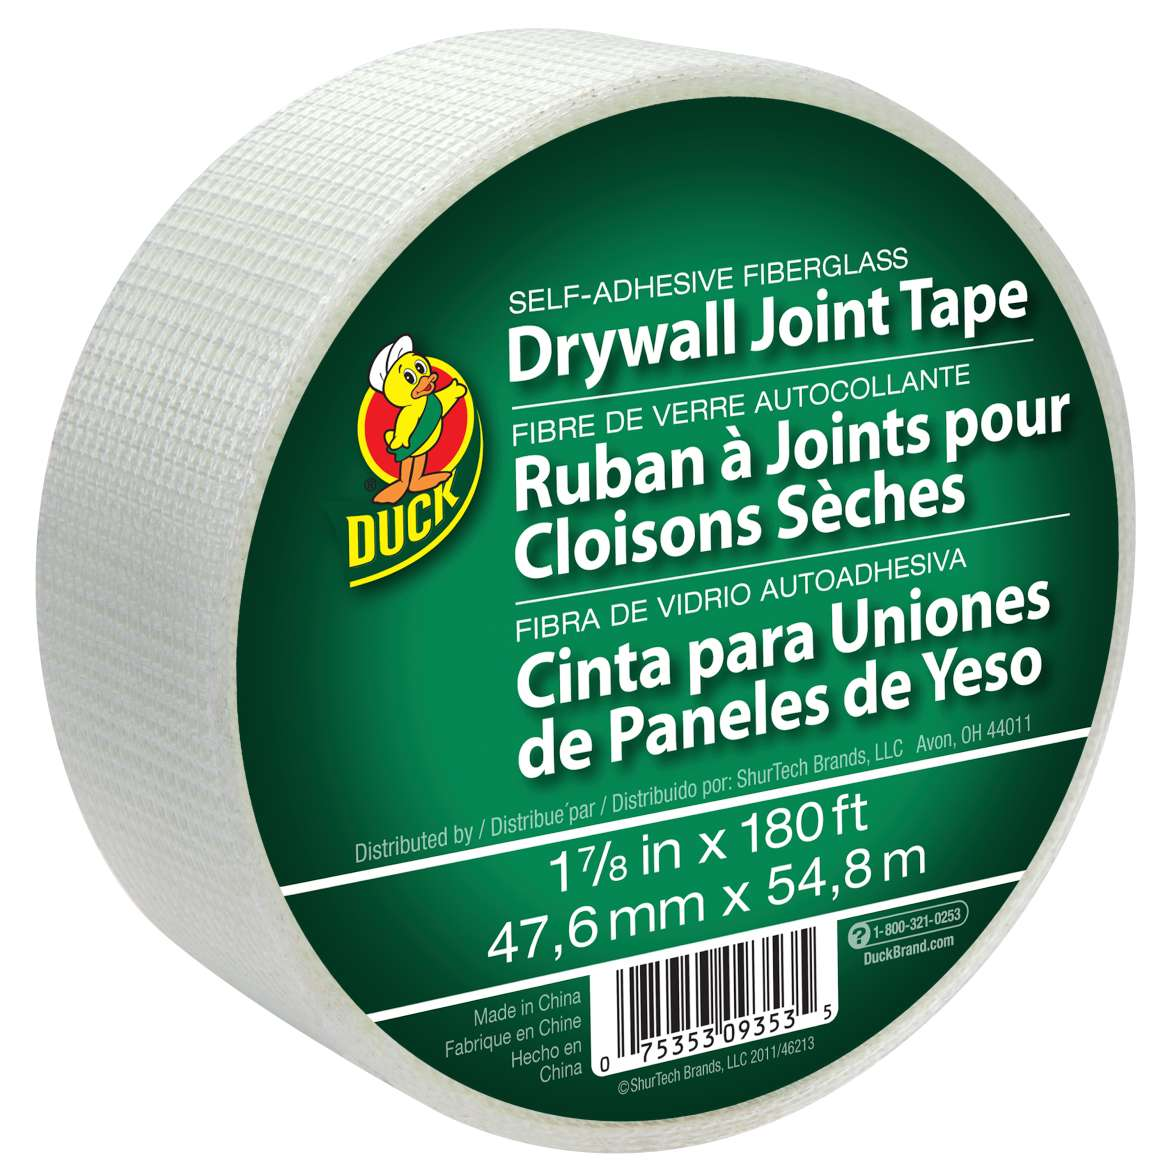 Duck® Brand Self-Adhesive Fiberglass Drywall Joint Tape, 1.88 in. x 180 ft. Image